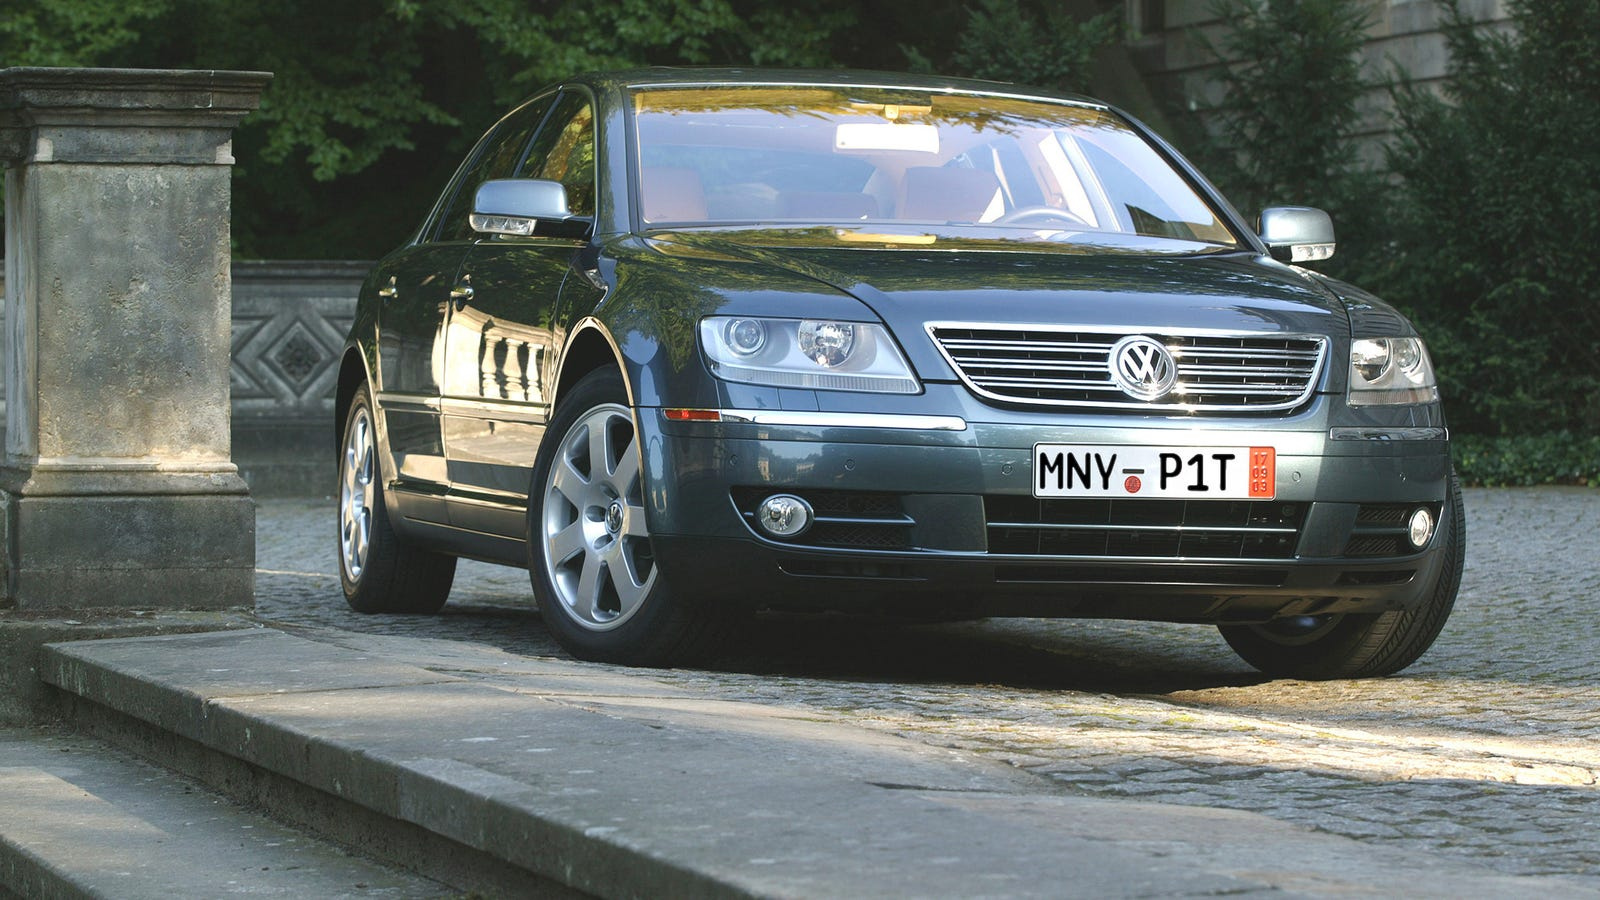 The Pain And Pleasure Of Briefly Owning A Used Volkswagen